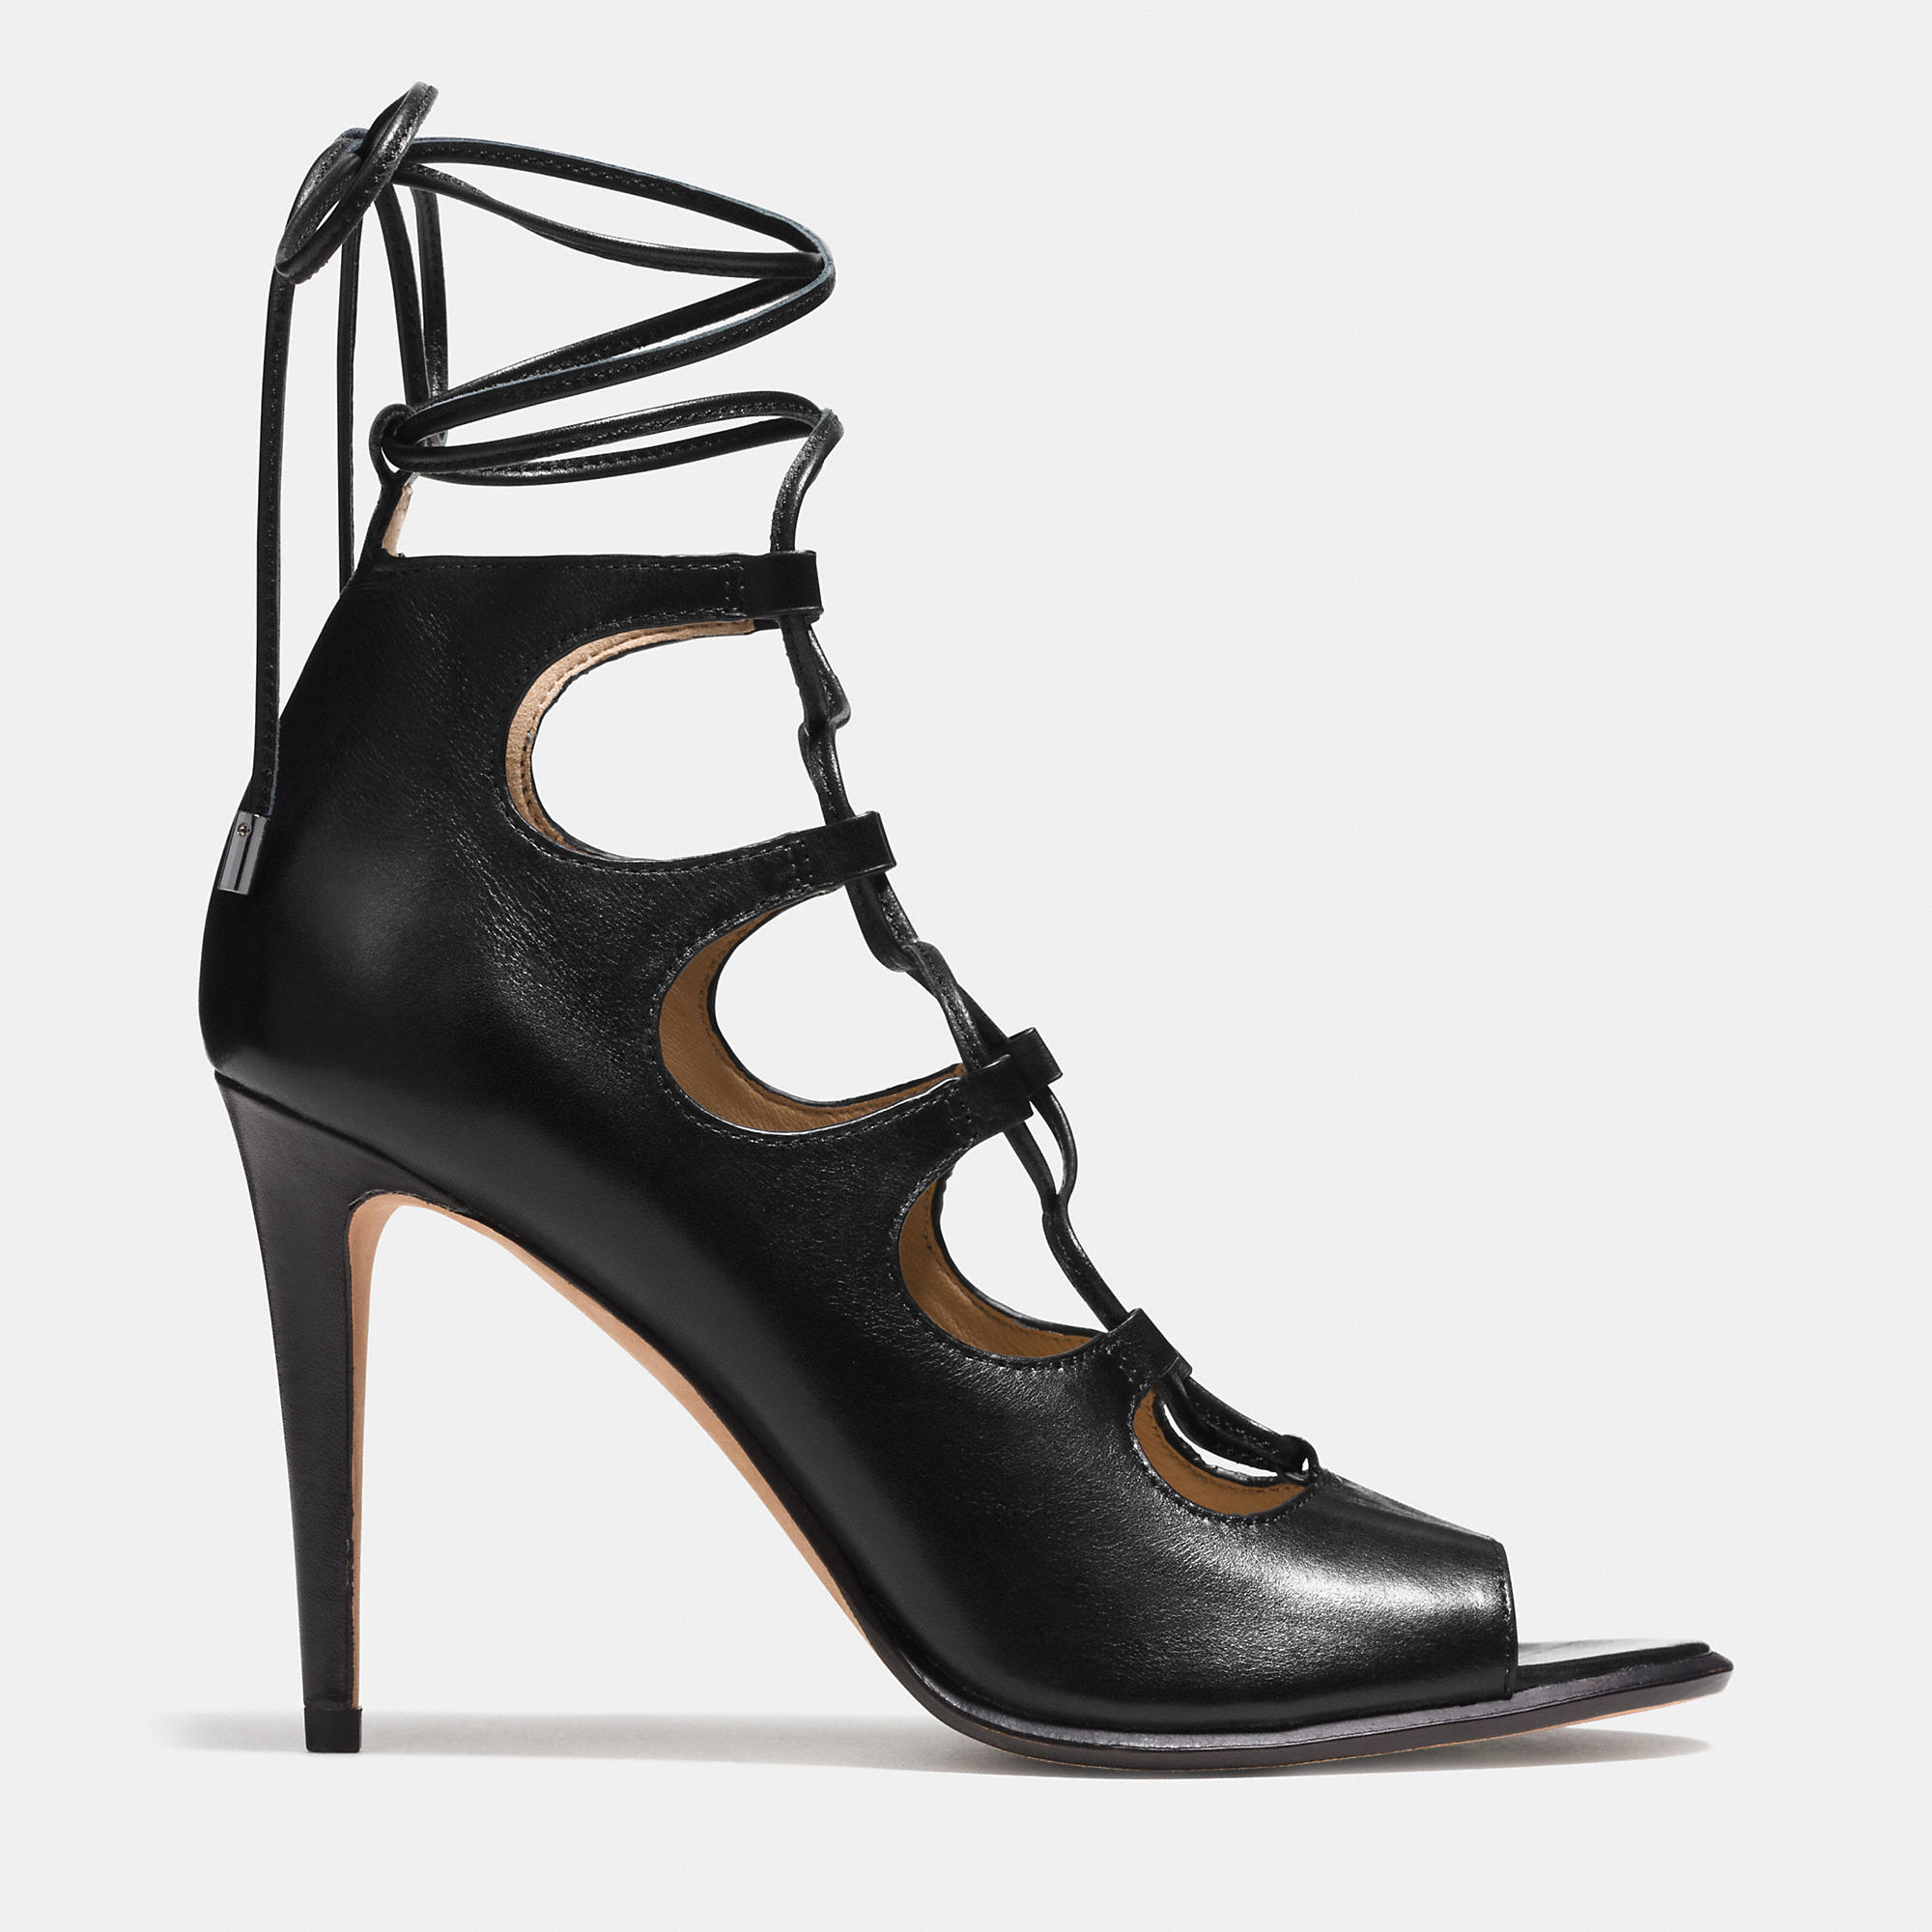 Lyst - Coach Kira Heel in Black